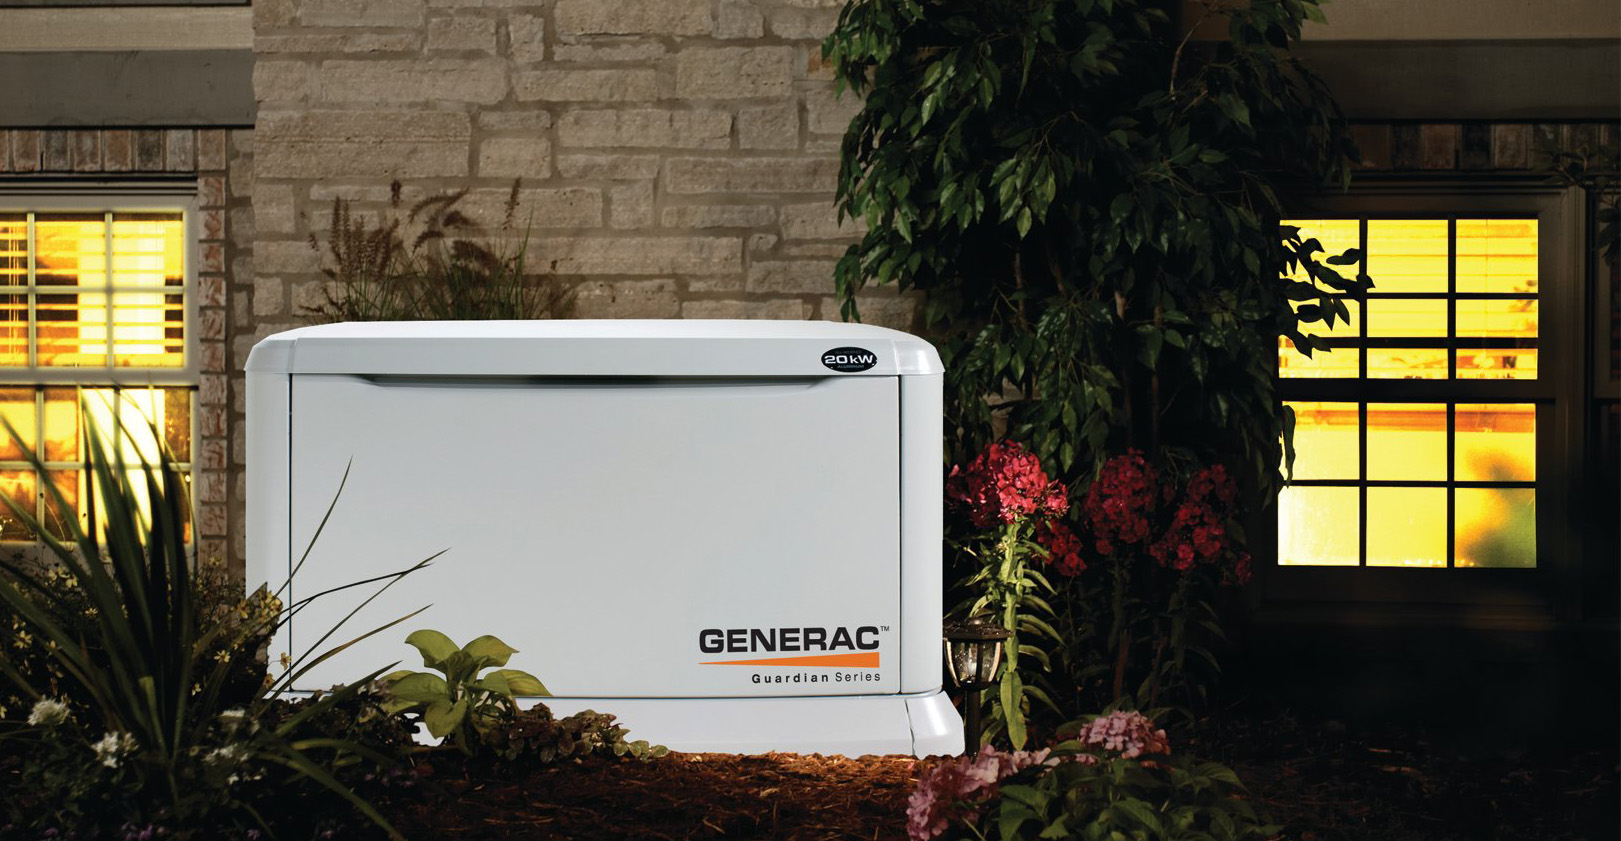 If the power ever goes out, your Generac standby generator goes on - automatically - protecting you and your home 24/7